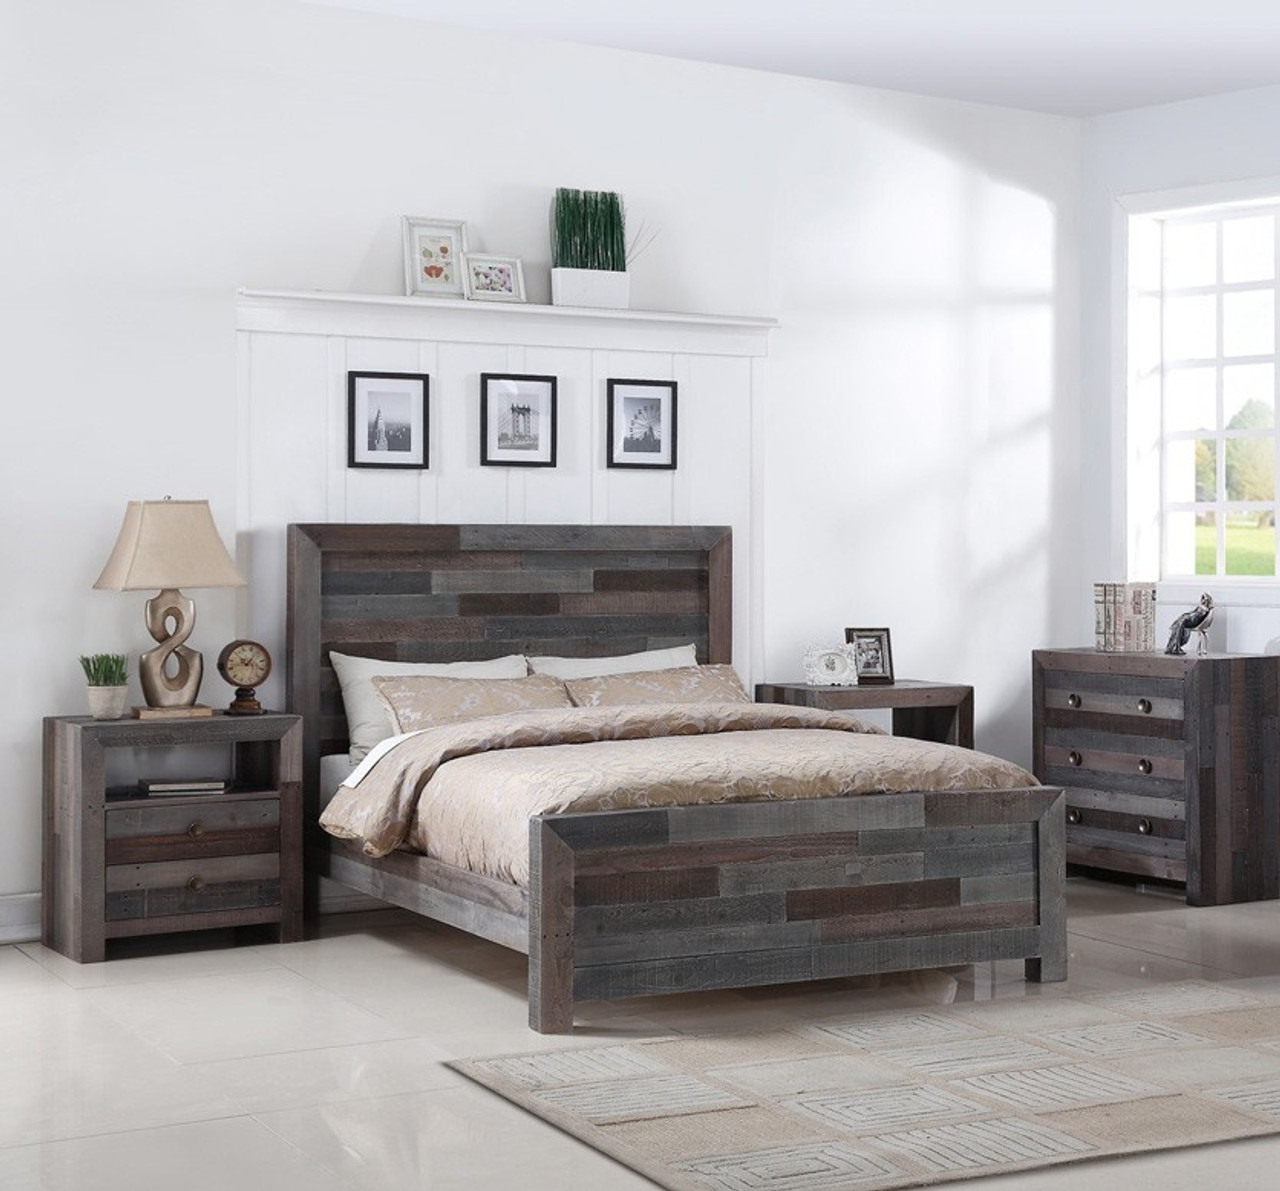 Angora Reclaimed Wood King Size Platform Bed-Storm| Zin Home